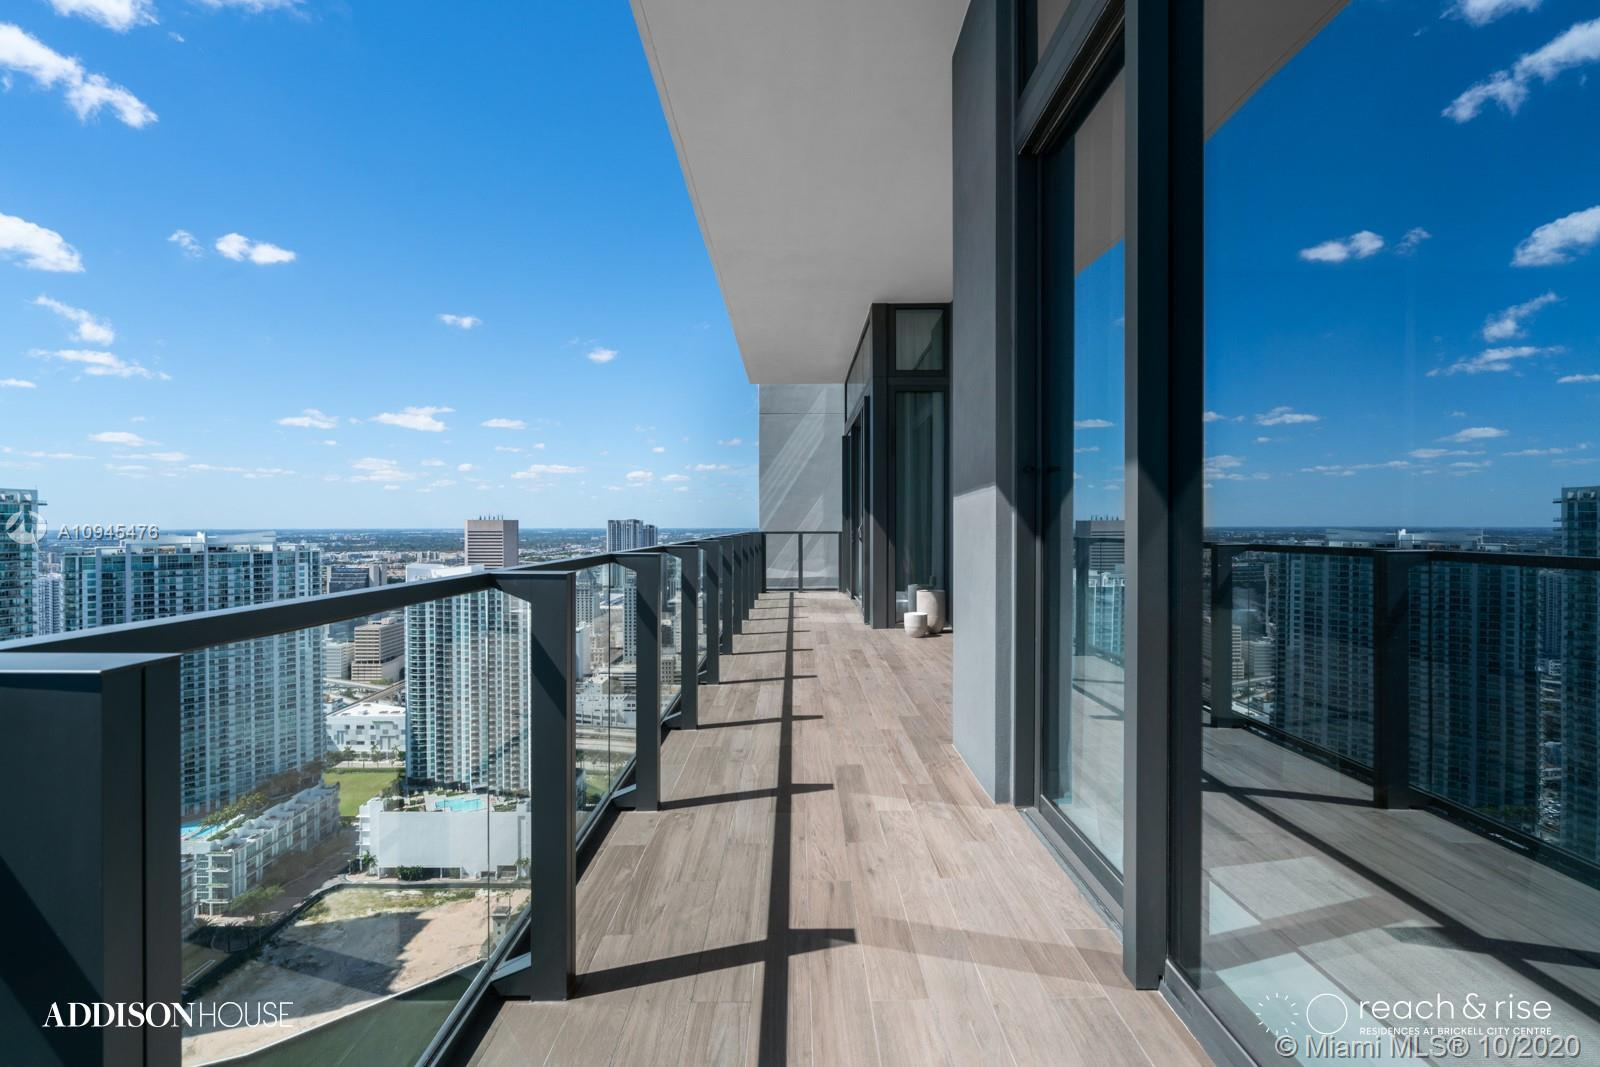 REACH is a 43-story tower designed by Arquitectonica. The building features an expansive, one-acre a